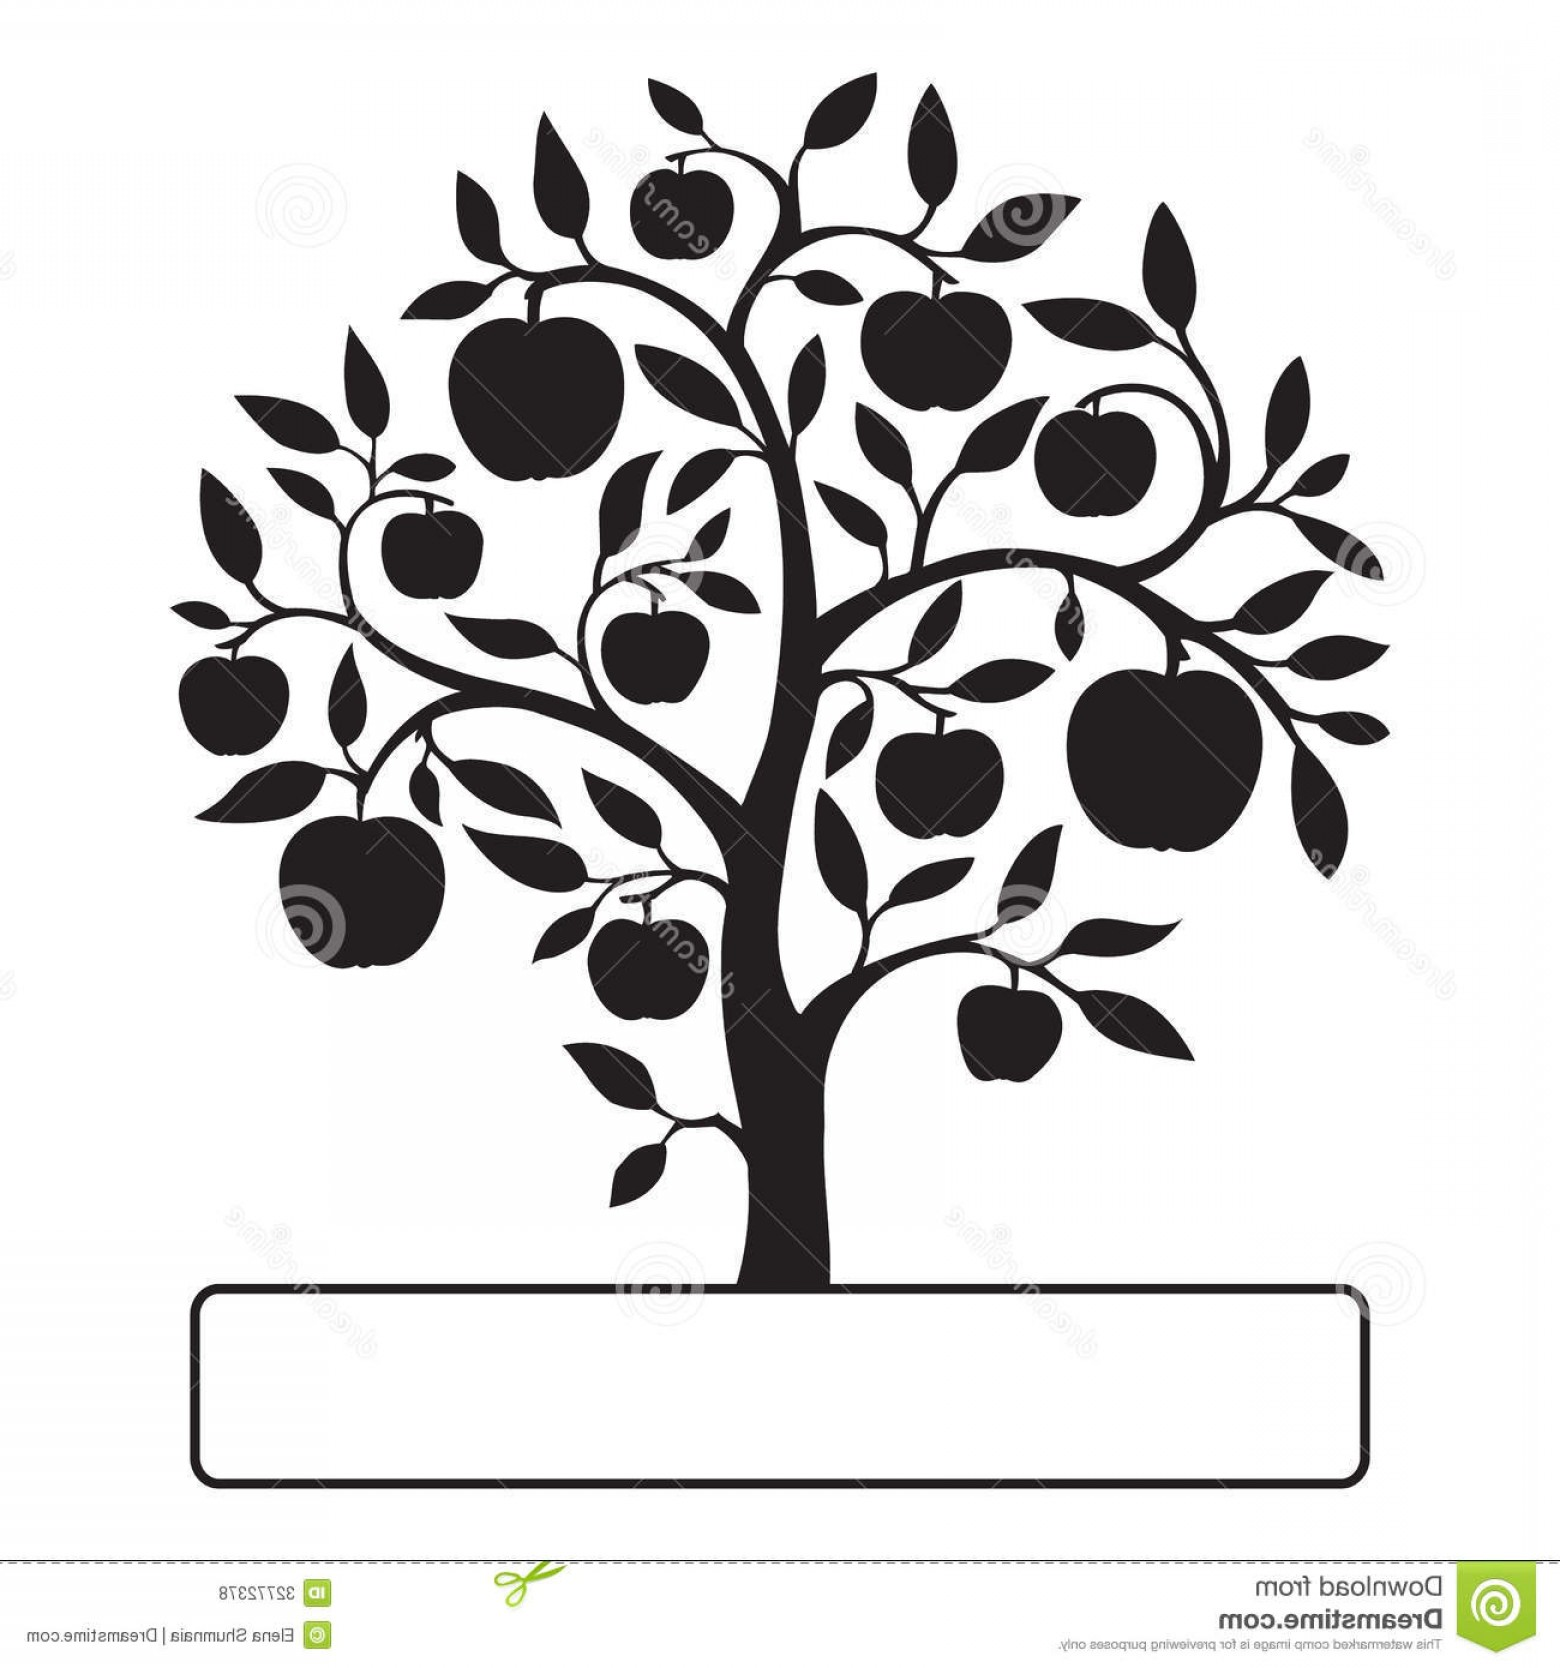 Apple Tree Vector Black: Royalty Free Stock Photos Black Apple Tree Text Box Leaves Apples Isolated White Background Image